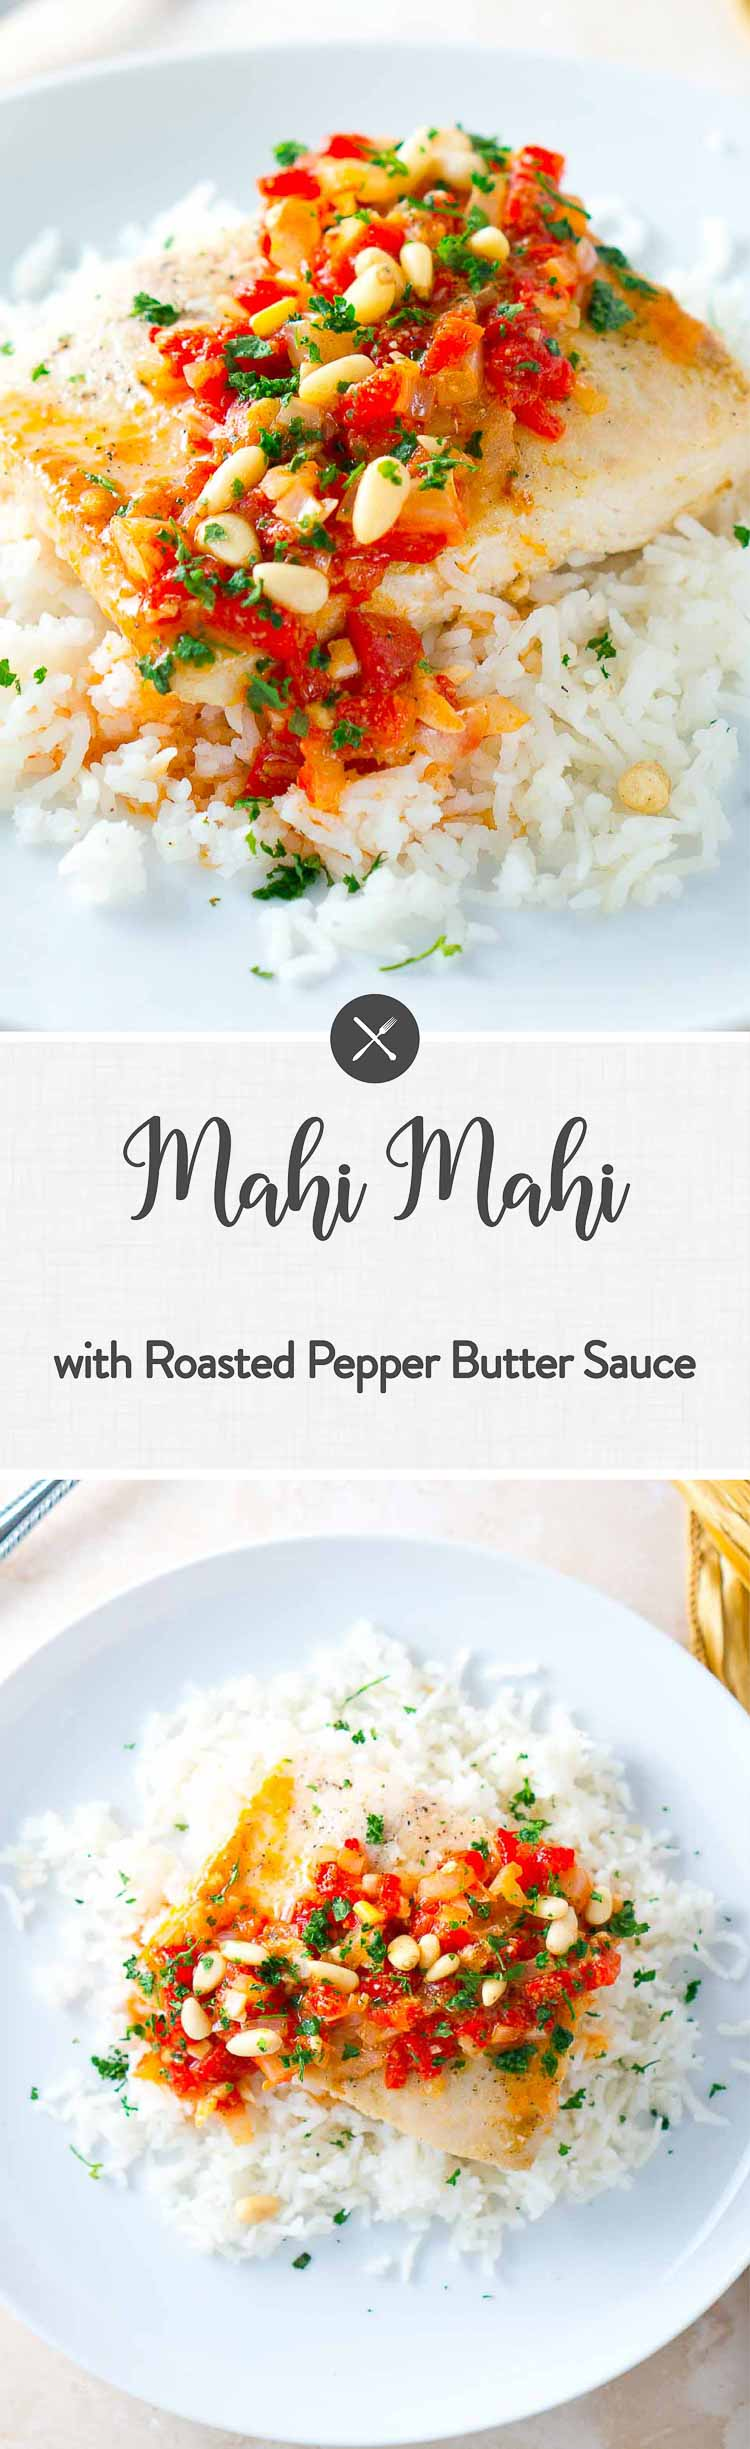 Mahi Mahi is cooked to perfection and served on a bed of fragrant jasmine rice with a warm and delicious roasted pepper butter sauce. #mahimahi #seafood #recipes #glutenfree #paleo #grainfree #lowcarb